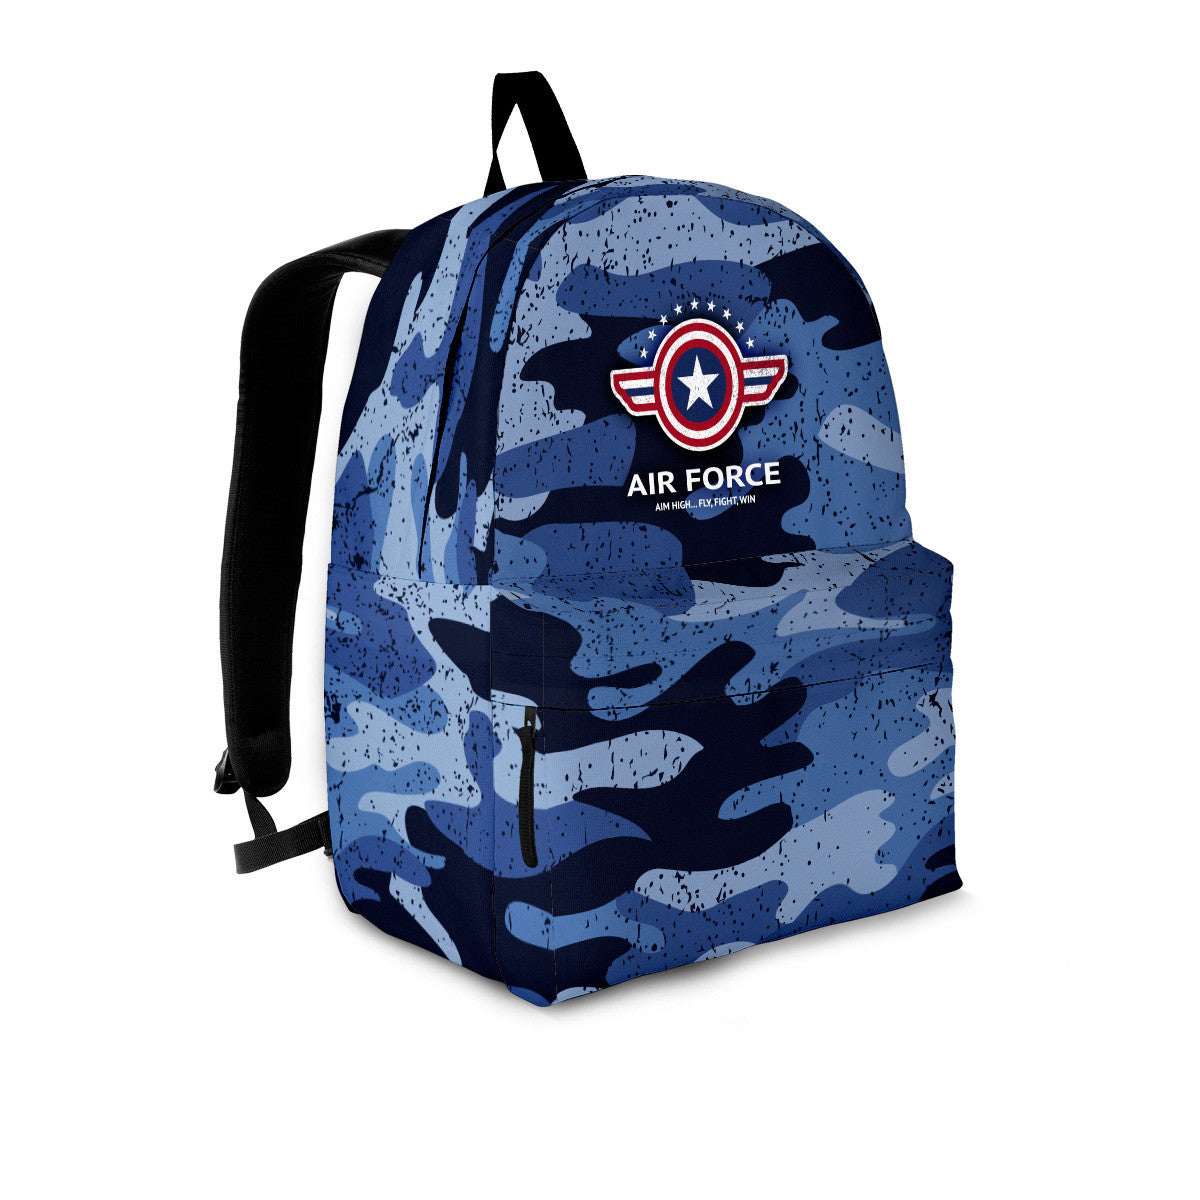 Air Force Backpack